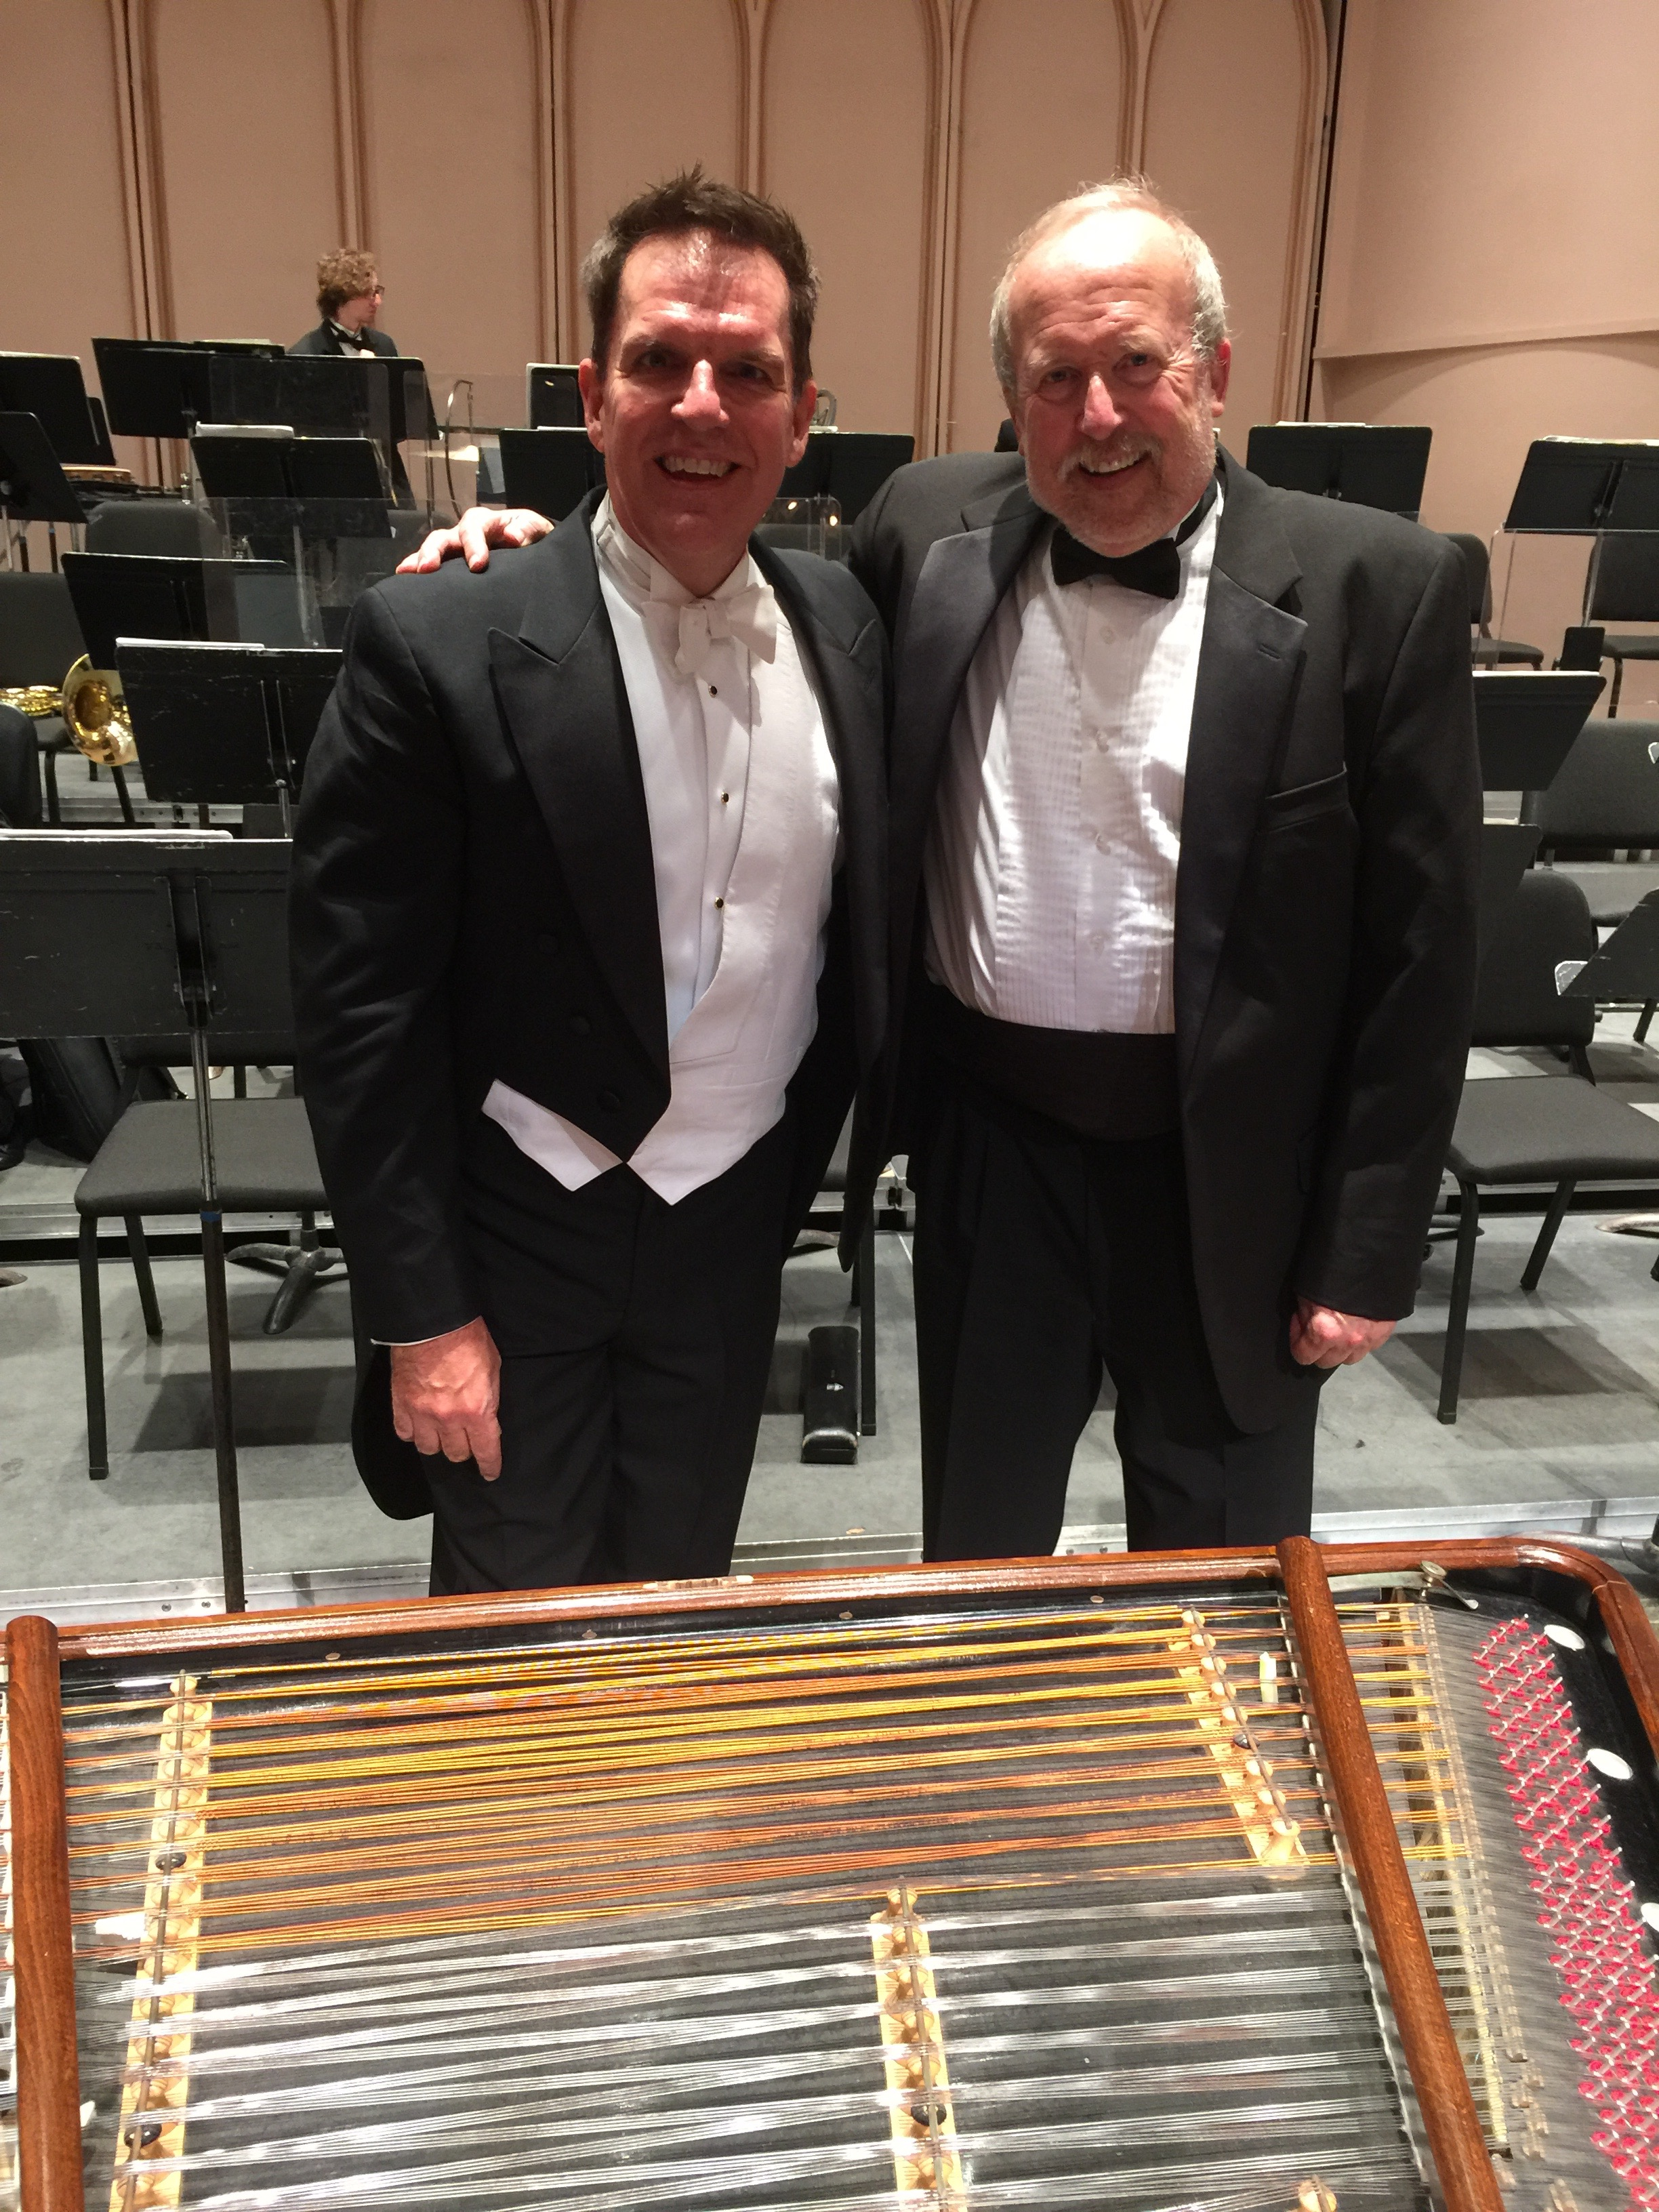 Pictured here with conductor of the CU Symphony--Gary Lewis.